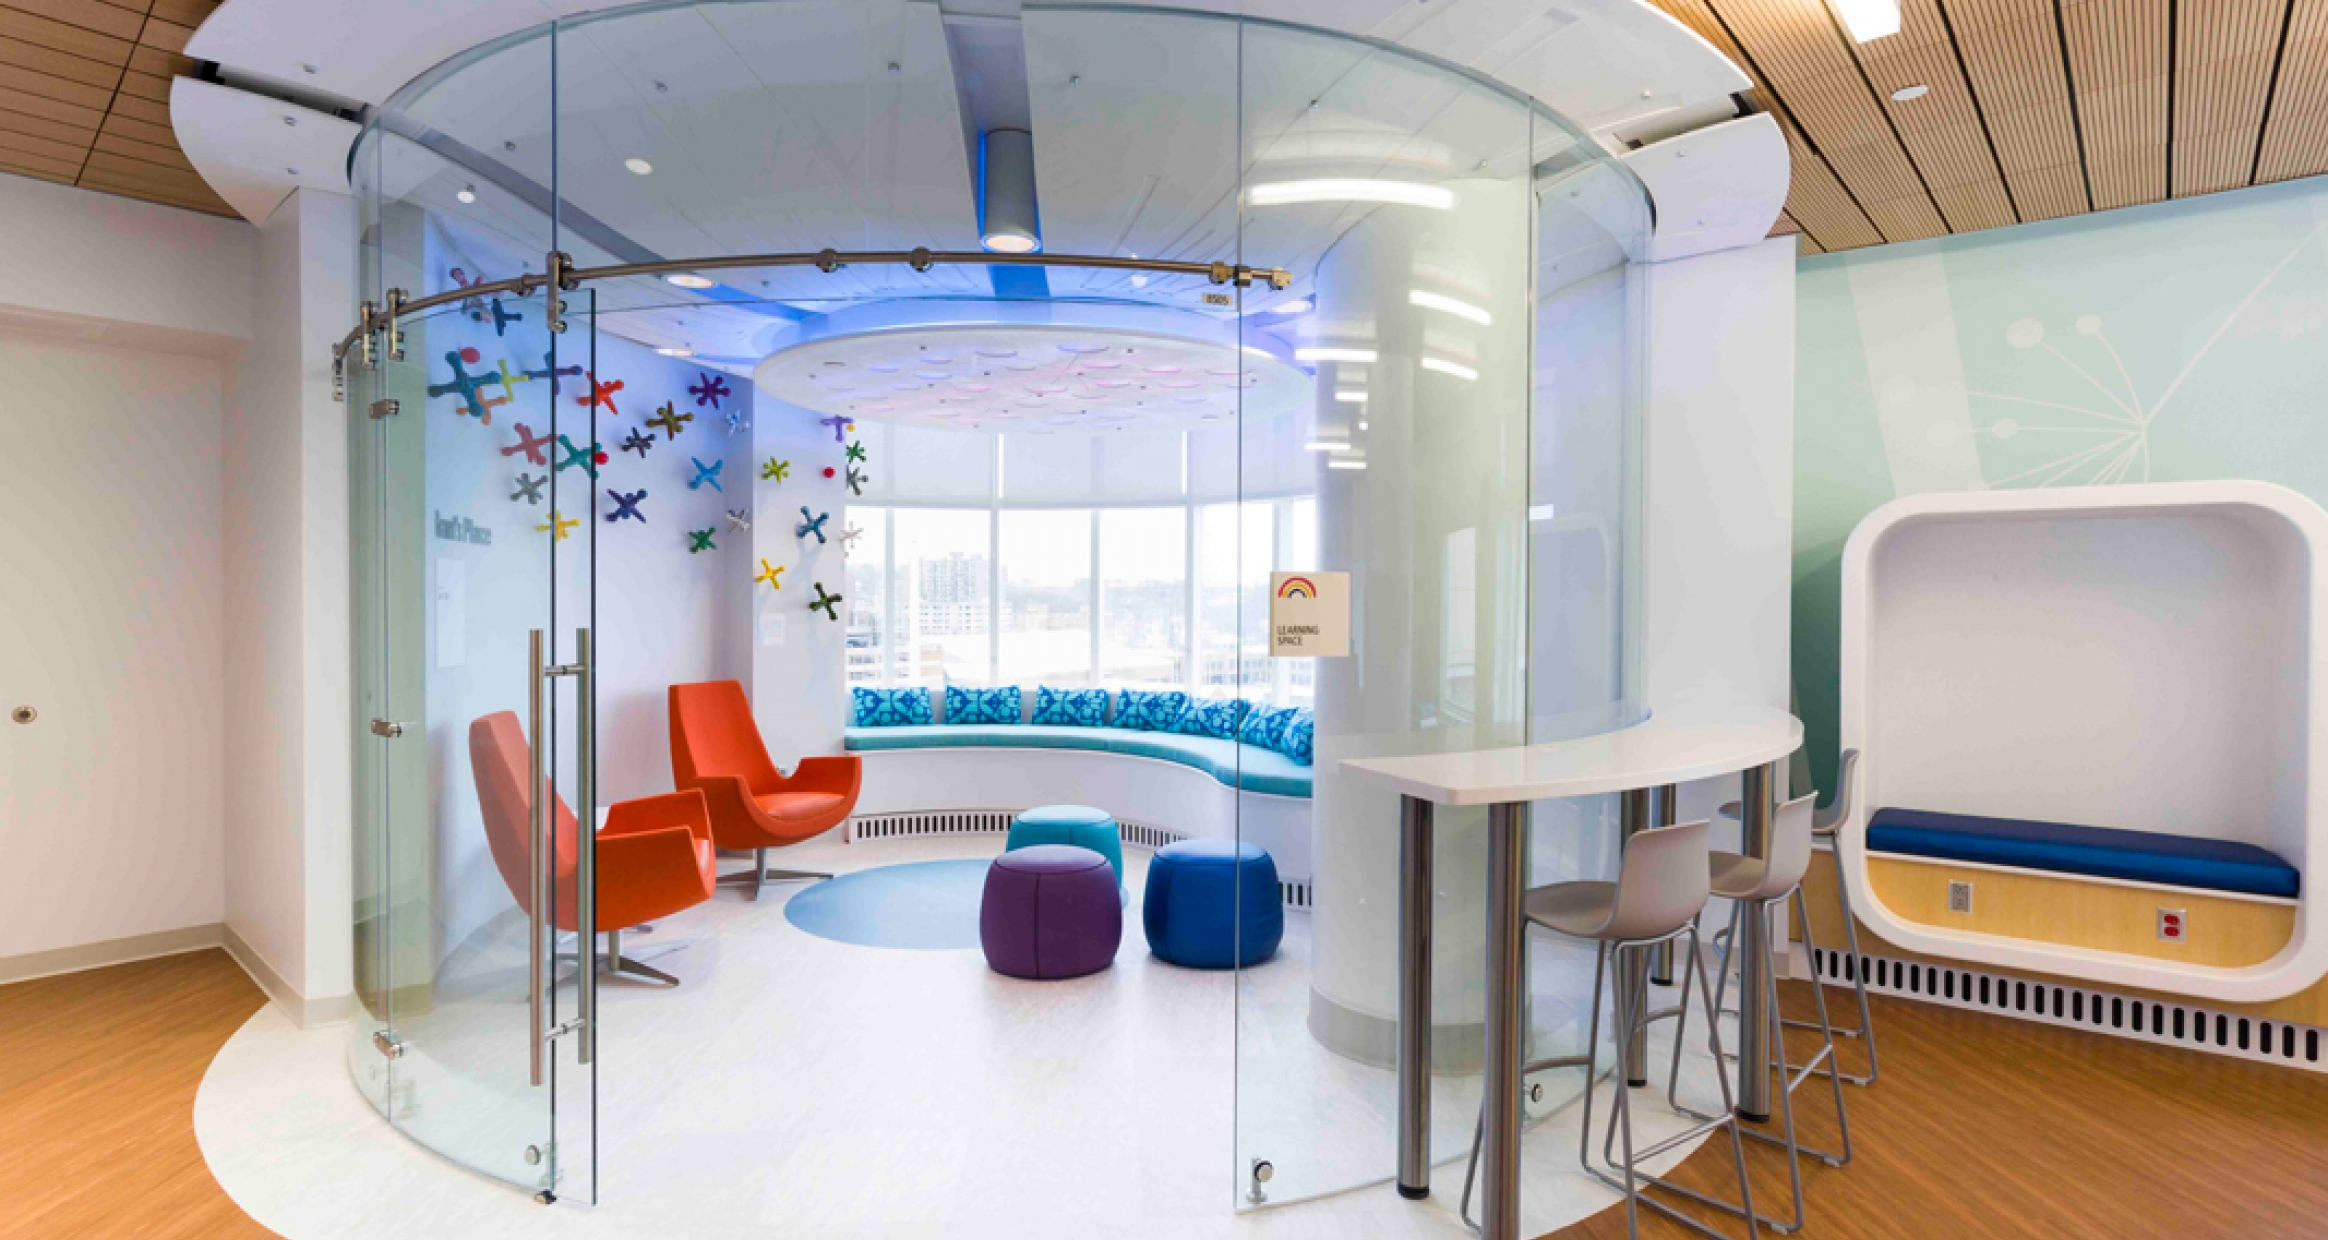 Inventive spaces make the Angie Fowler Adolescent & Young Adult Cancer Center more welcoming.